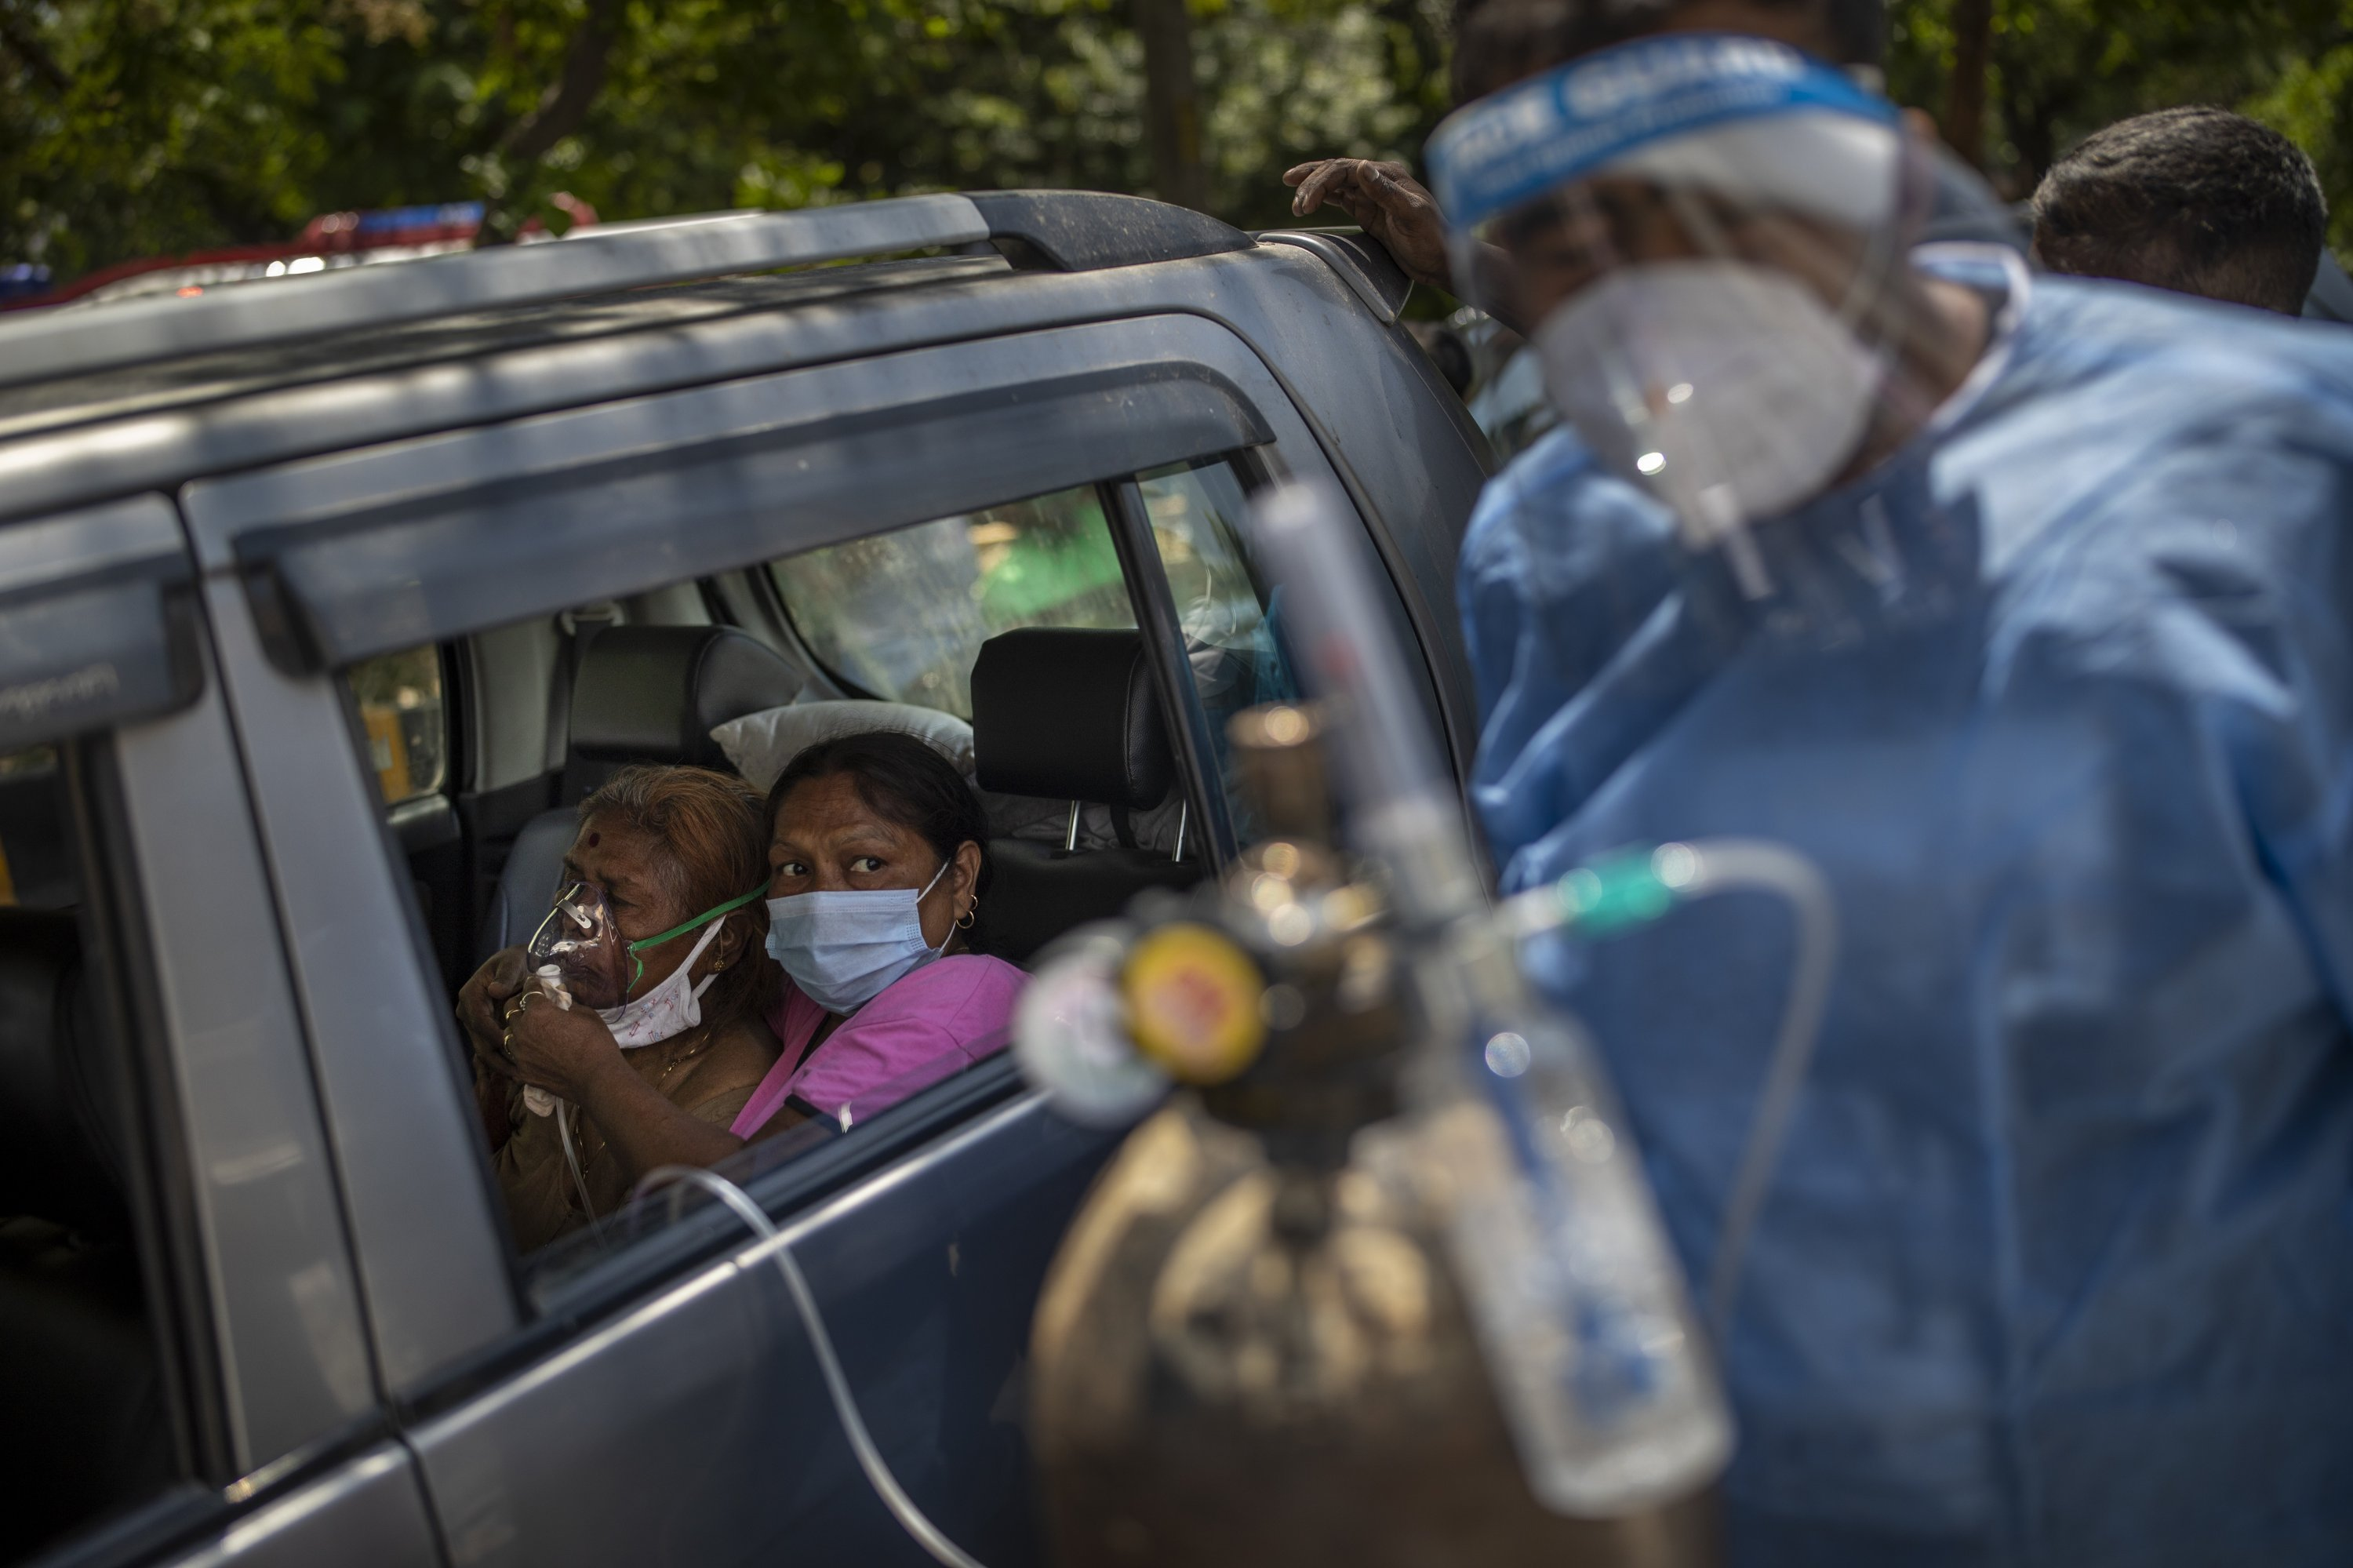 A patient receives oxygen inside a car provided by a Gurdwara, a Sikh place of worship, in New Delhi, India, April 24, 2021. (AP Photo)